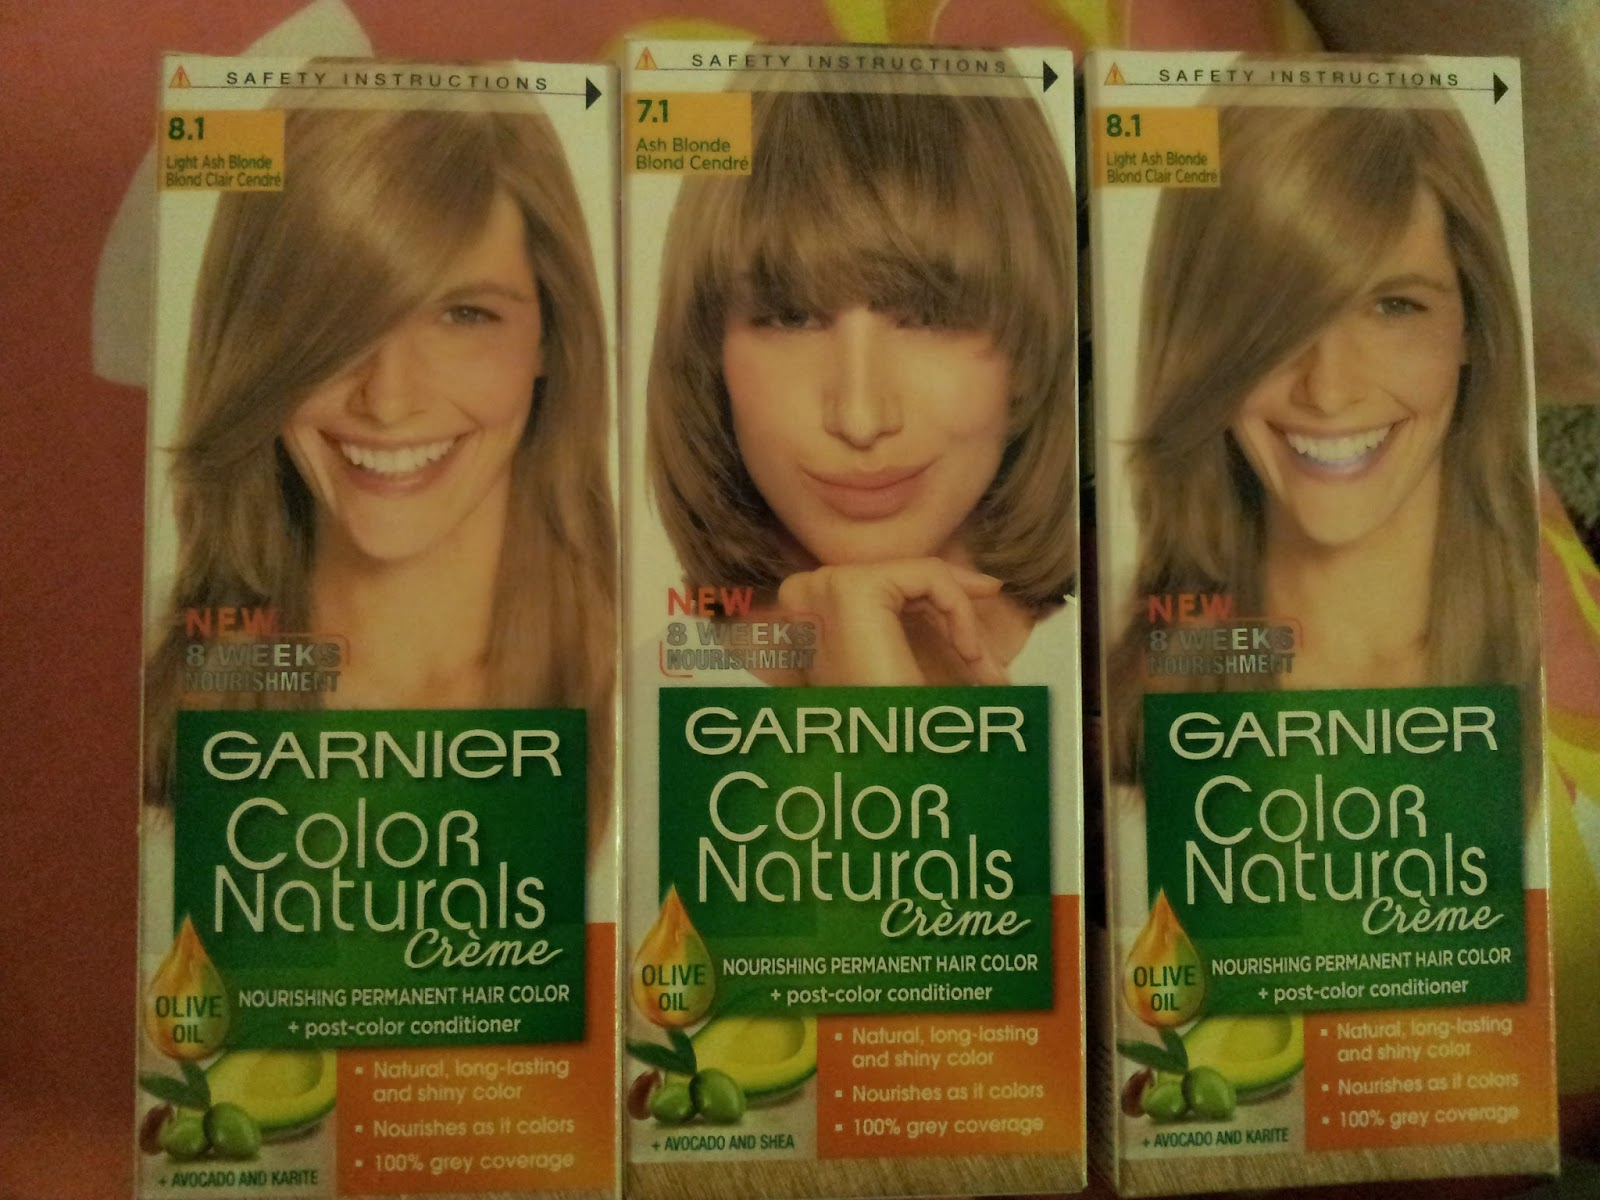 Experimenting With Life Experimenting With Garnier Color Naturals